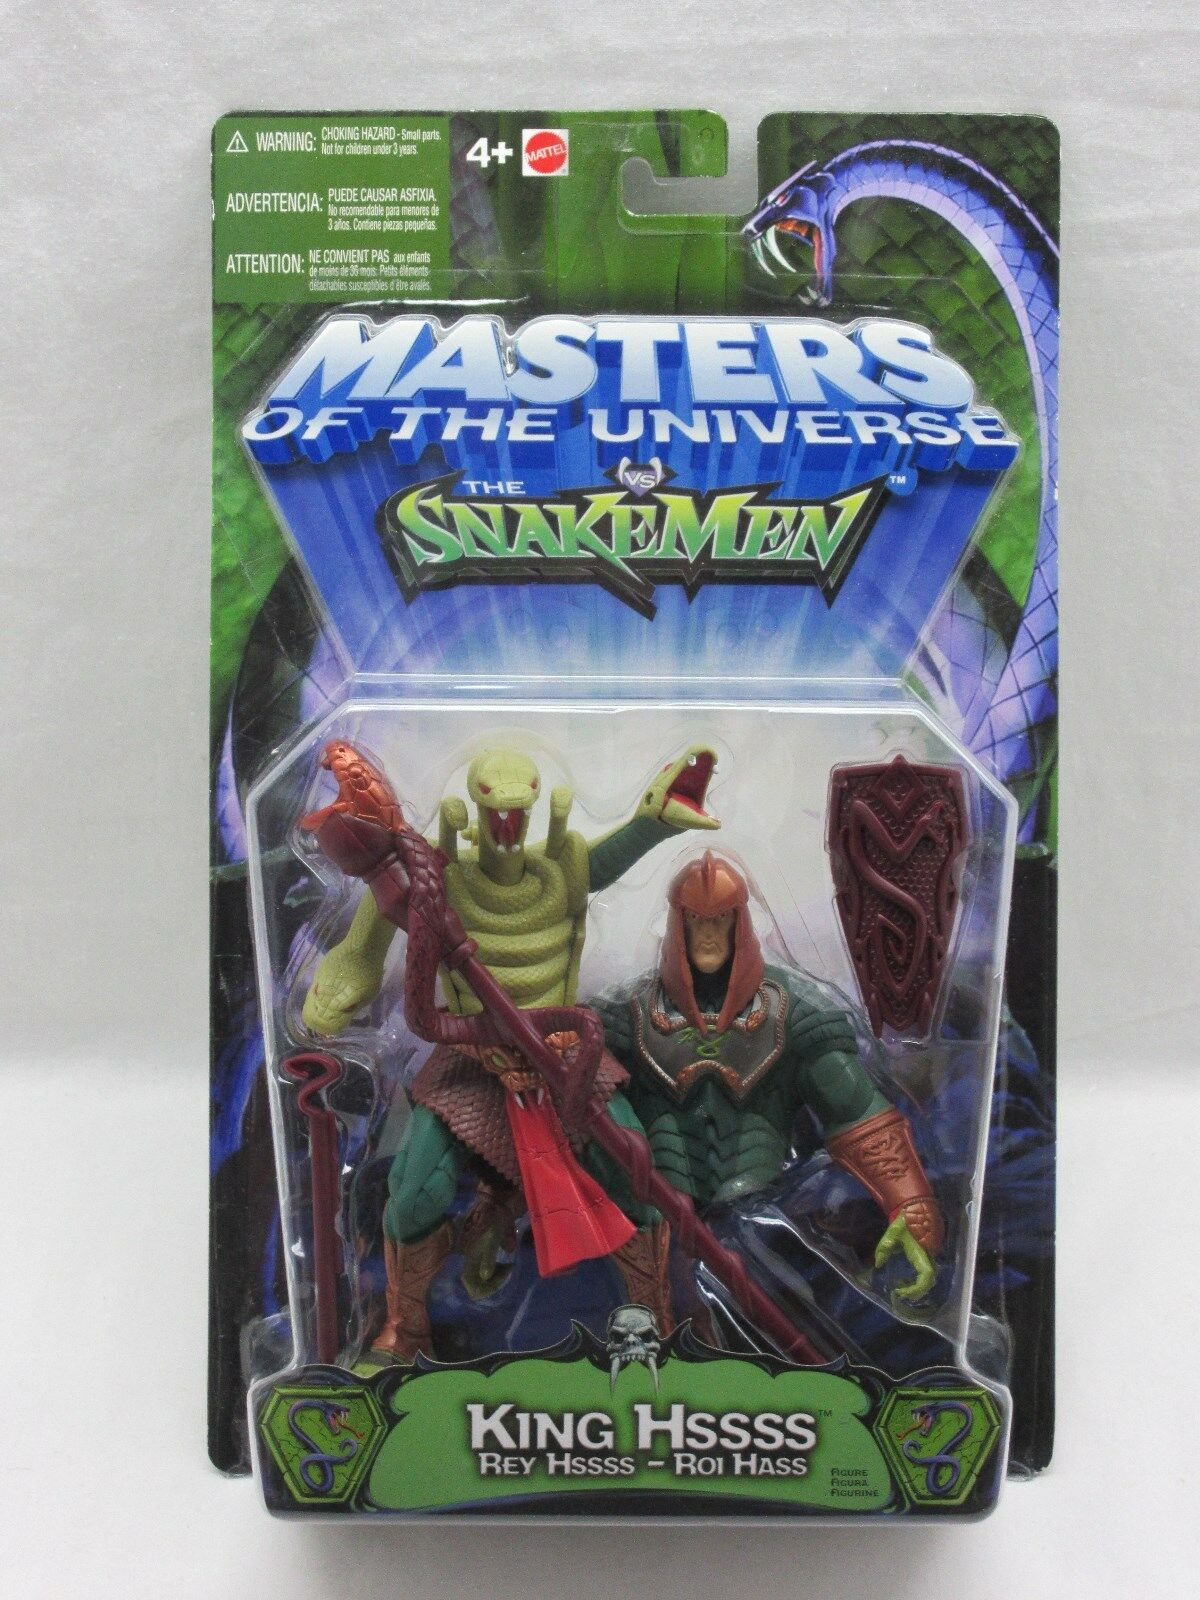 MOTU,200X,KING HSSSS,HISS,Masters of the Universe,MOC,carded,Sealed,He Man